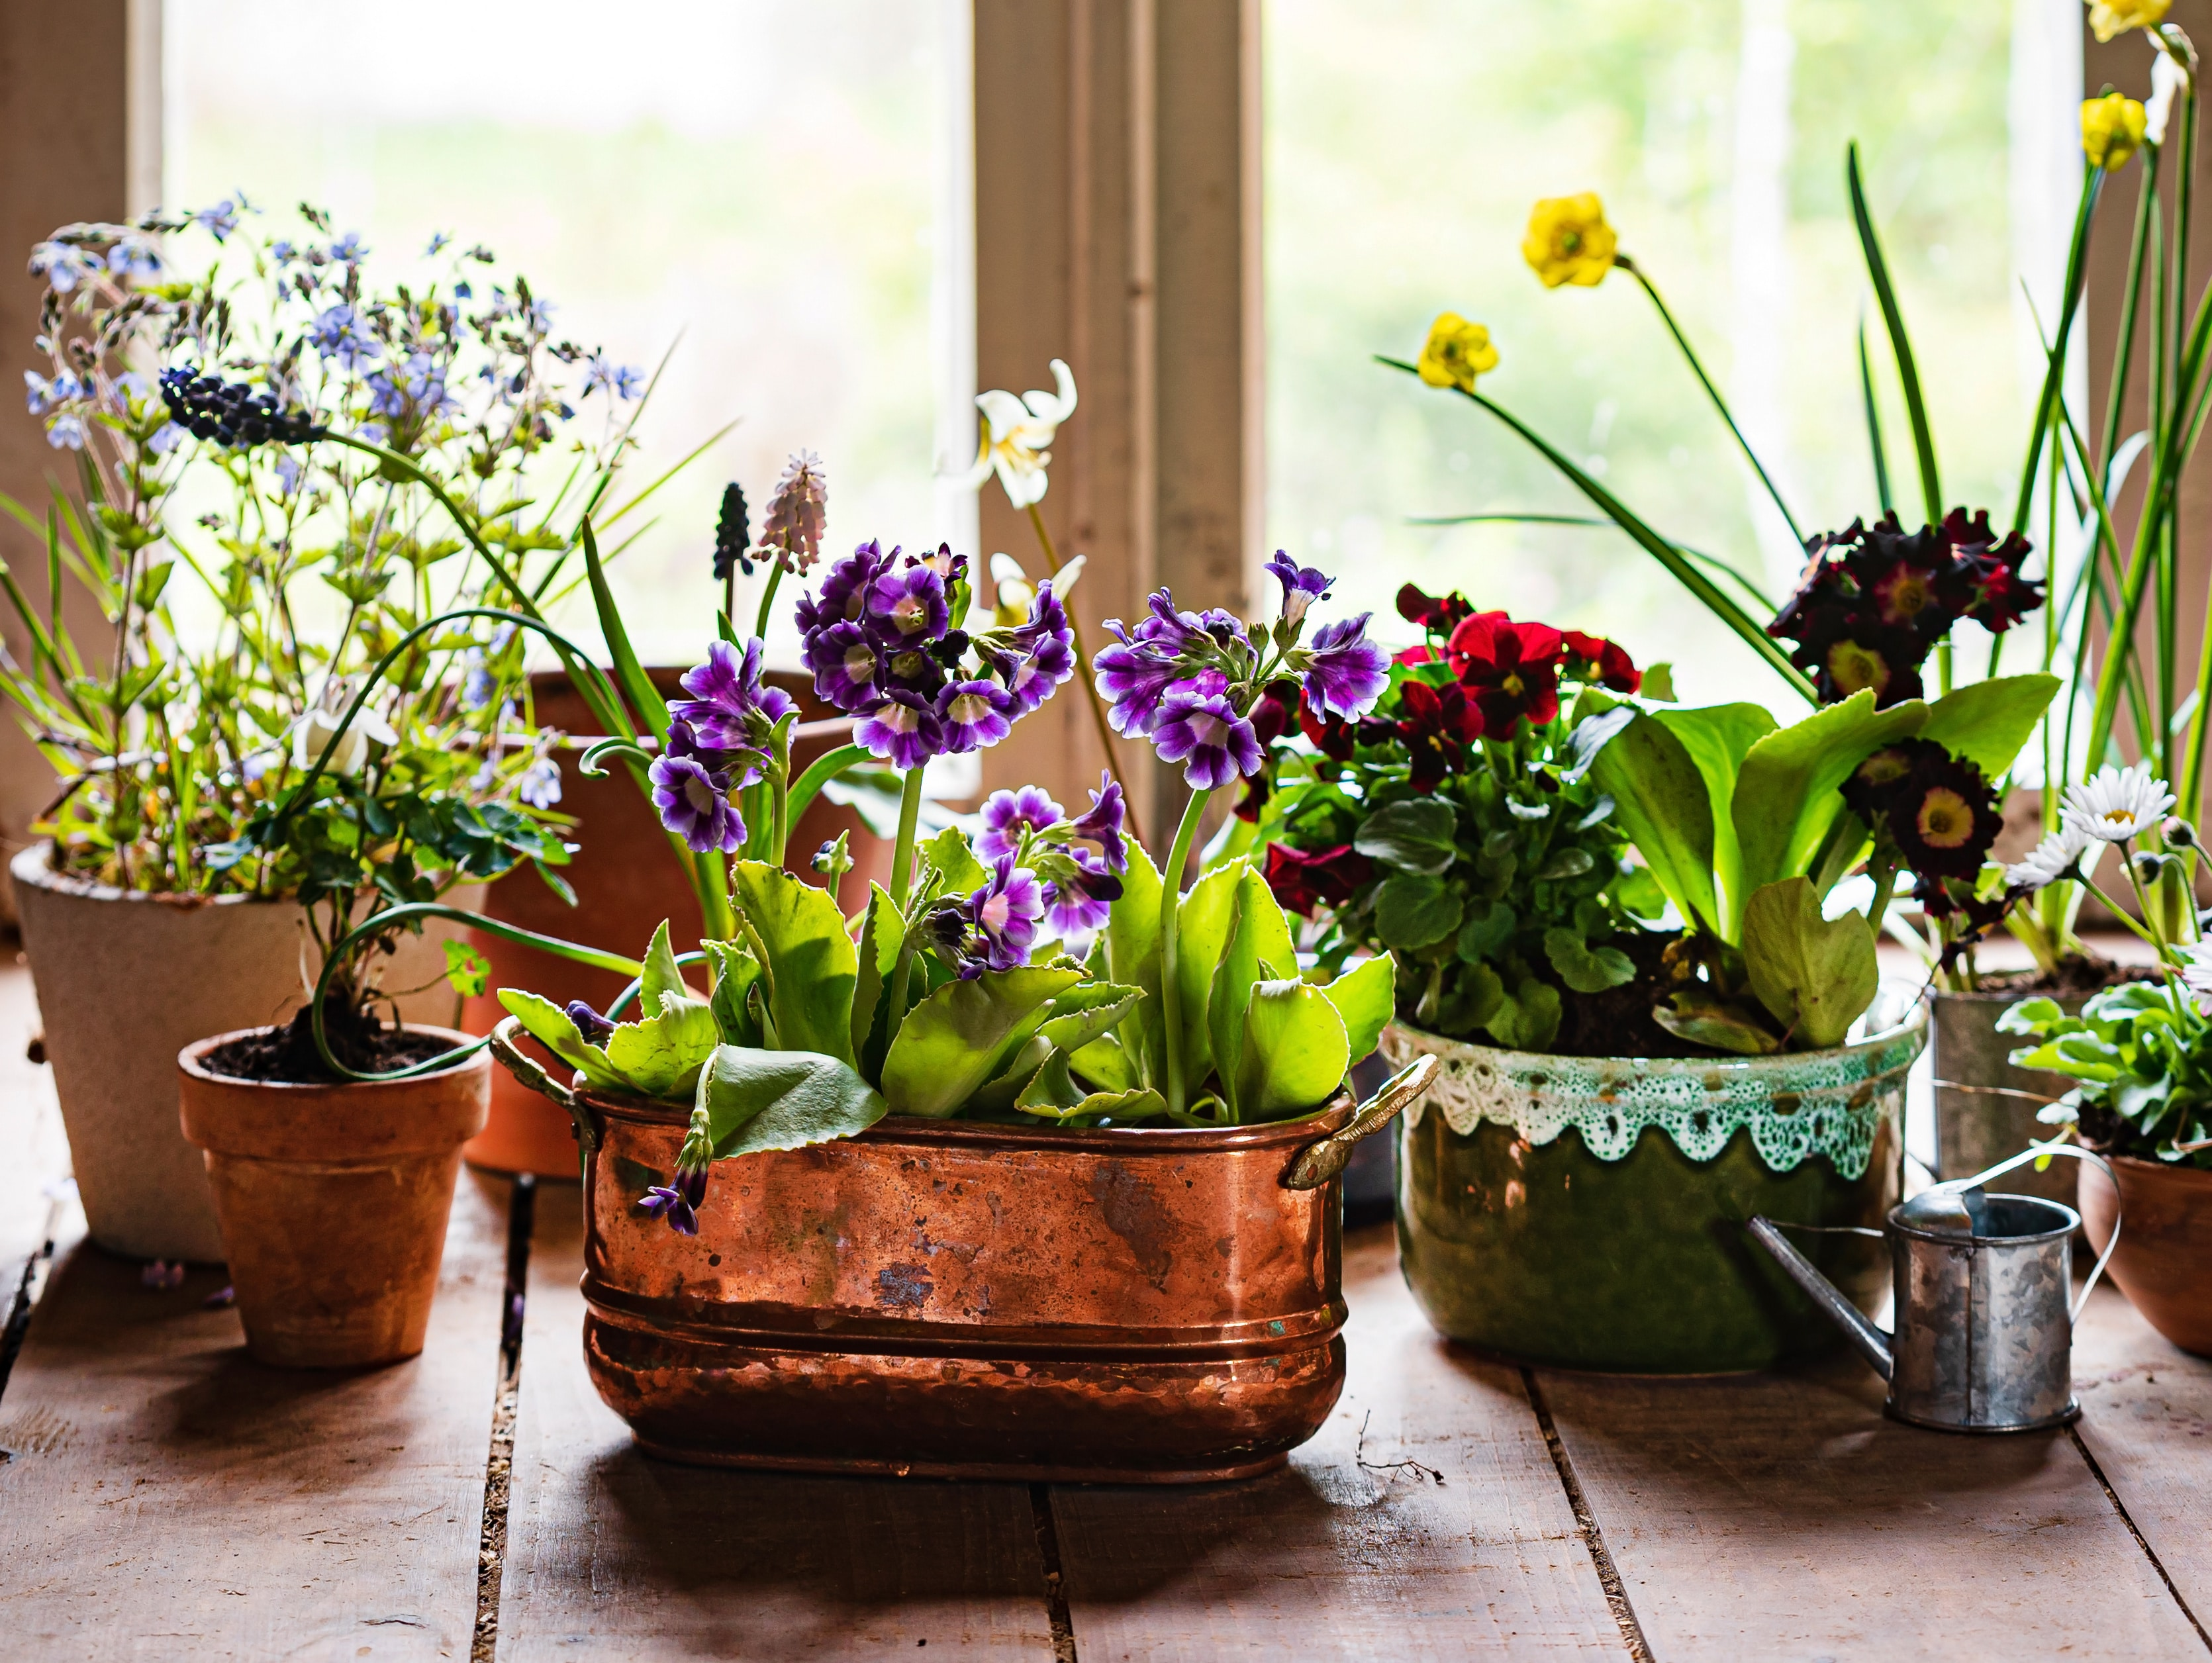 spring flowers in the pots